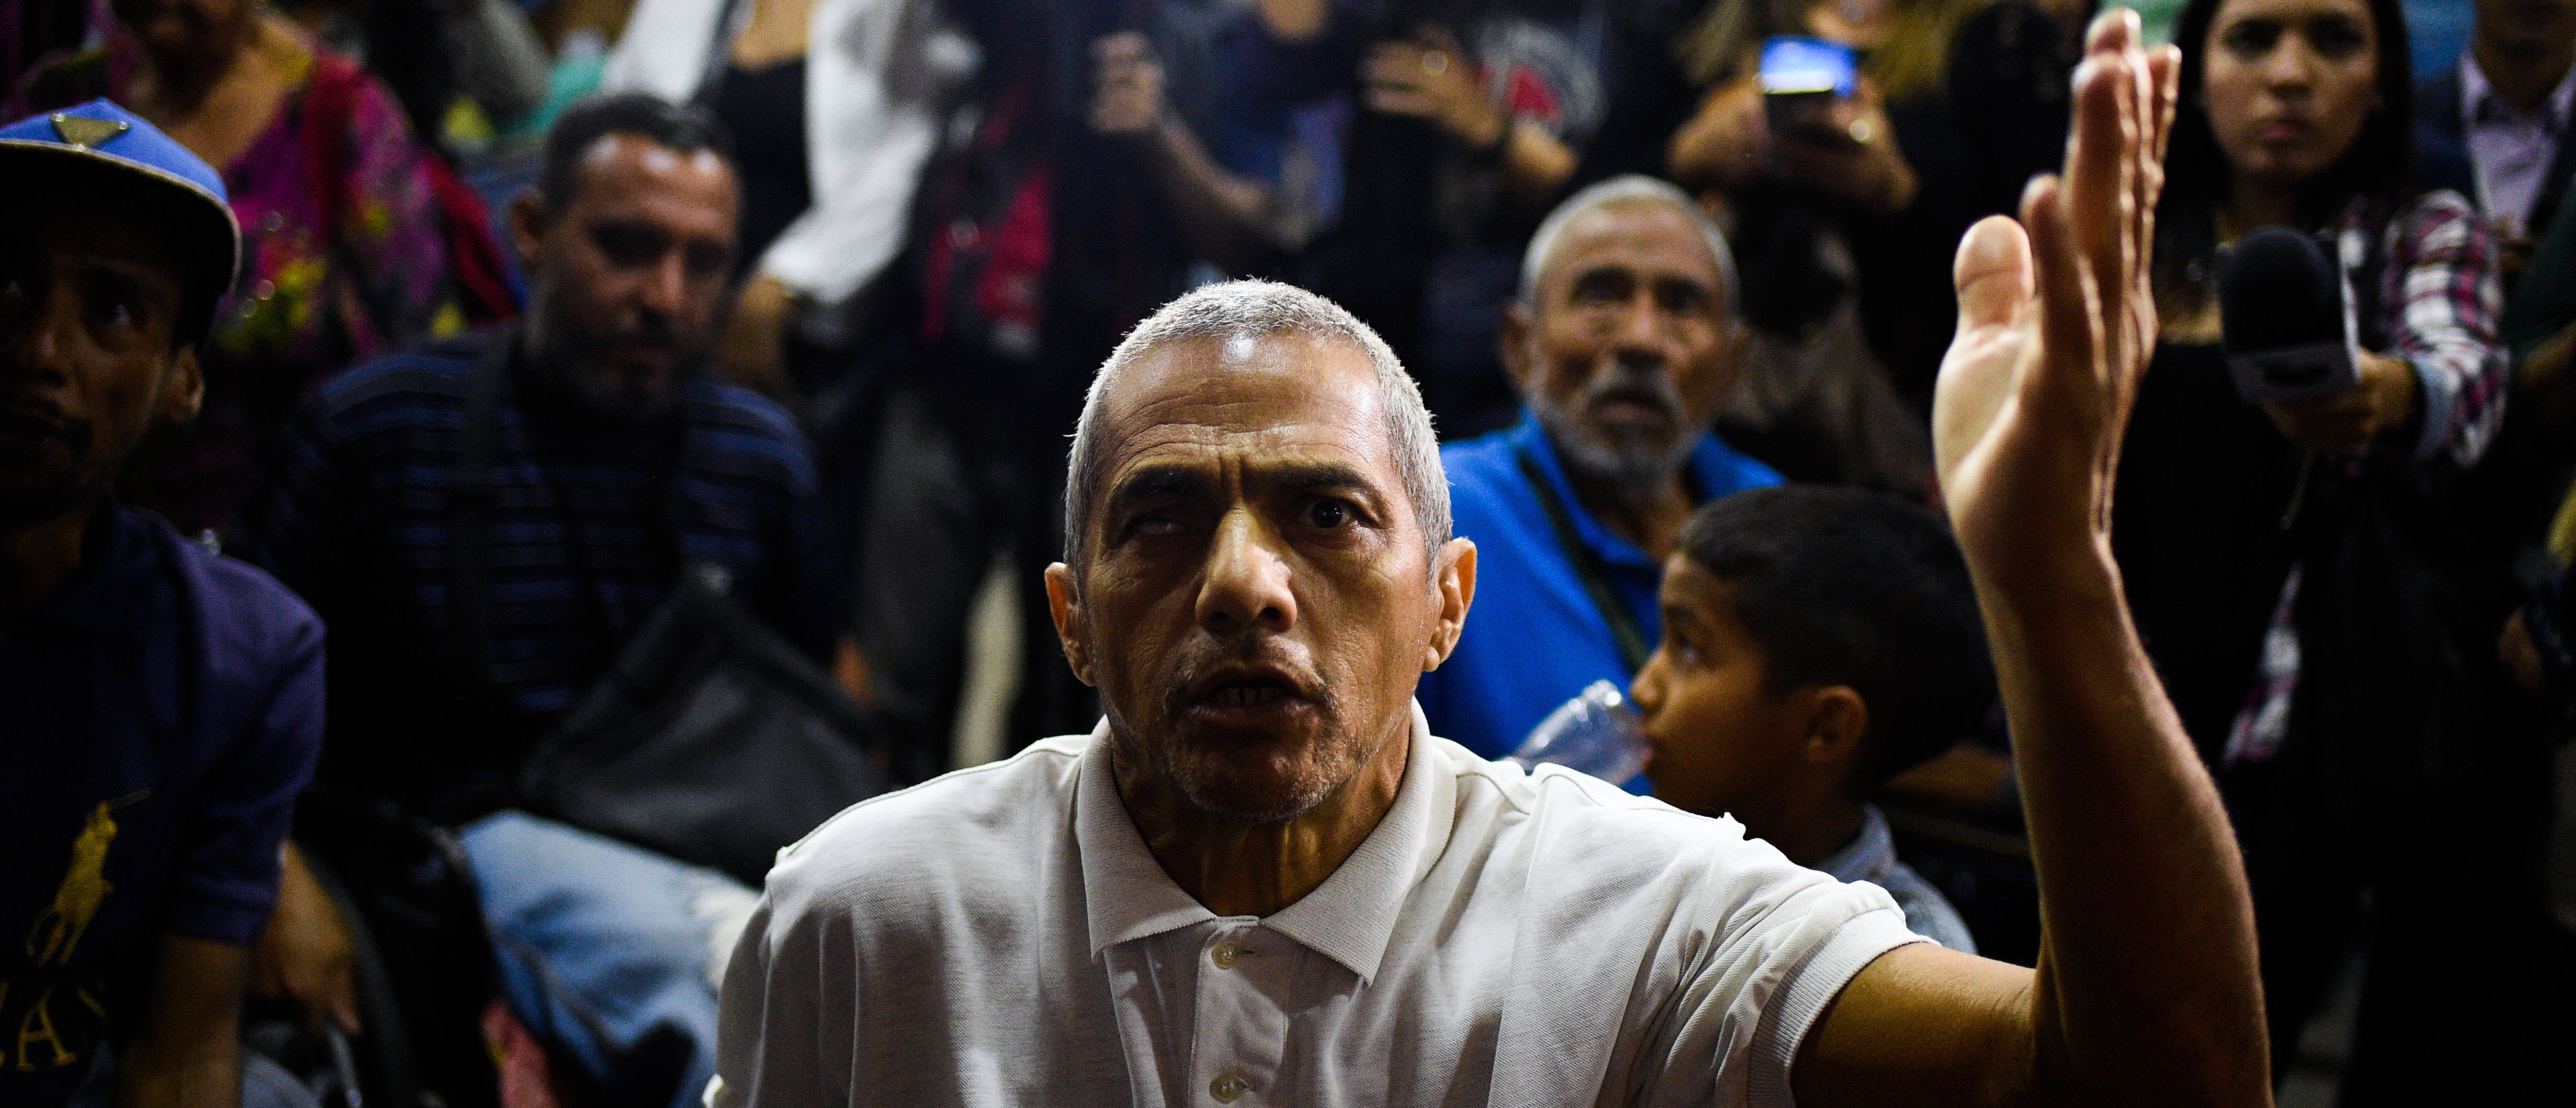 Patients and their relatives protest for the lack of medicines and medical supplies in hospitals, in front of the Health Ministry in Caracas on June 5, 2018. (Photo by Federico PARRA / AFP) (Photo credit should read FEDERICO PARRA/AFP/Getty Images)